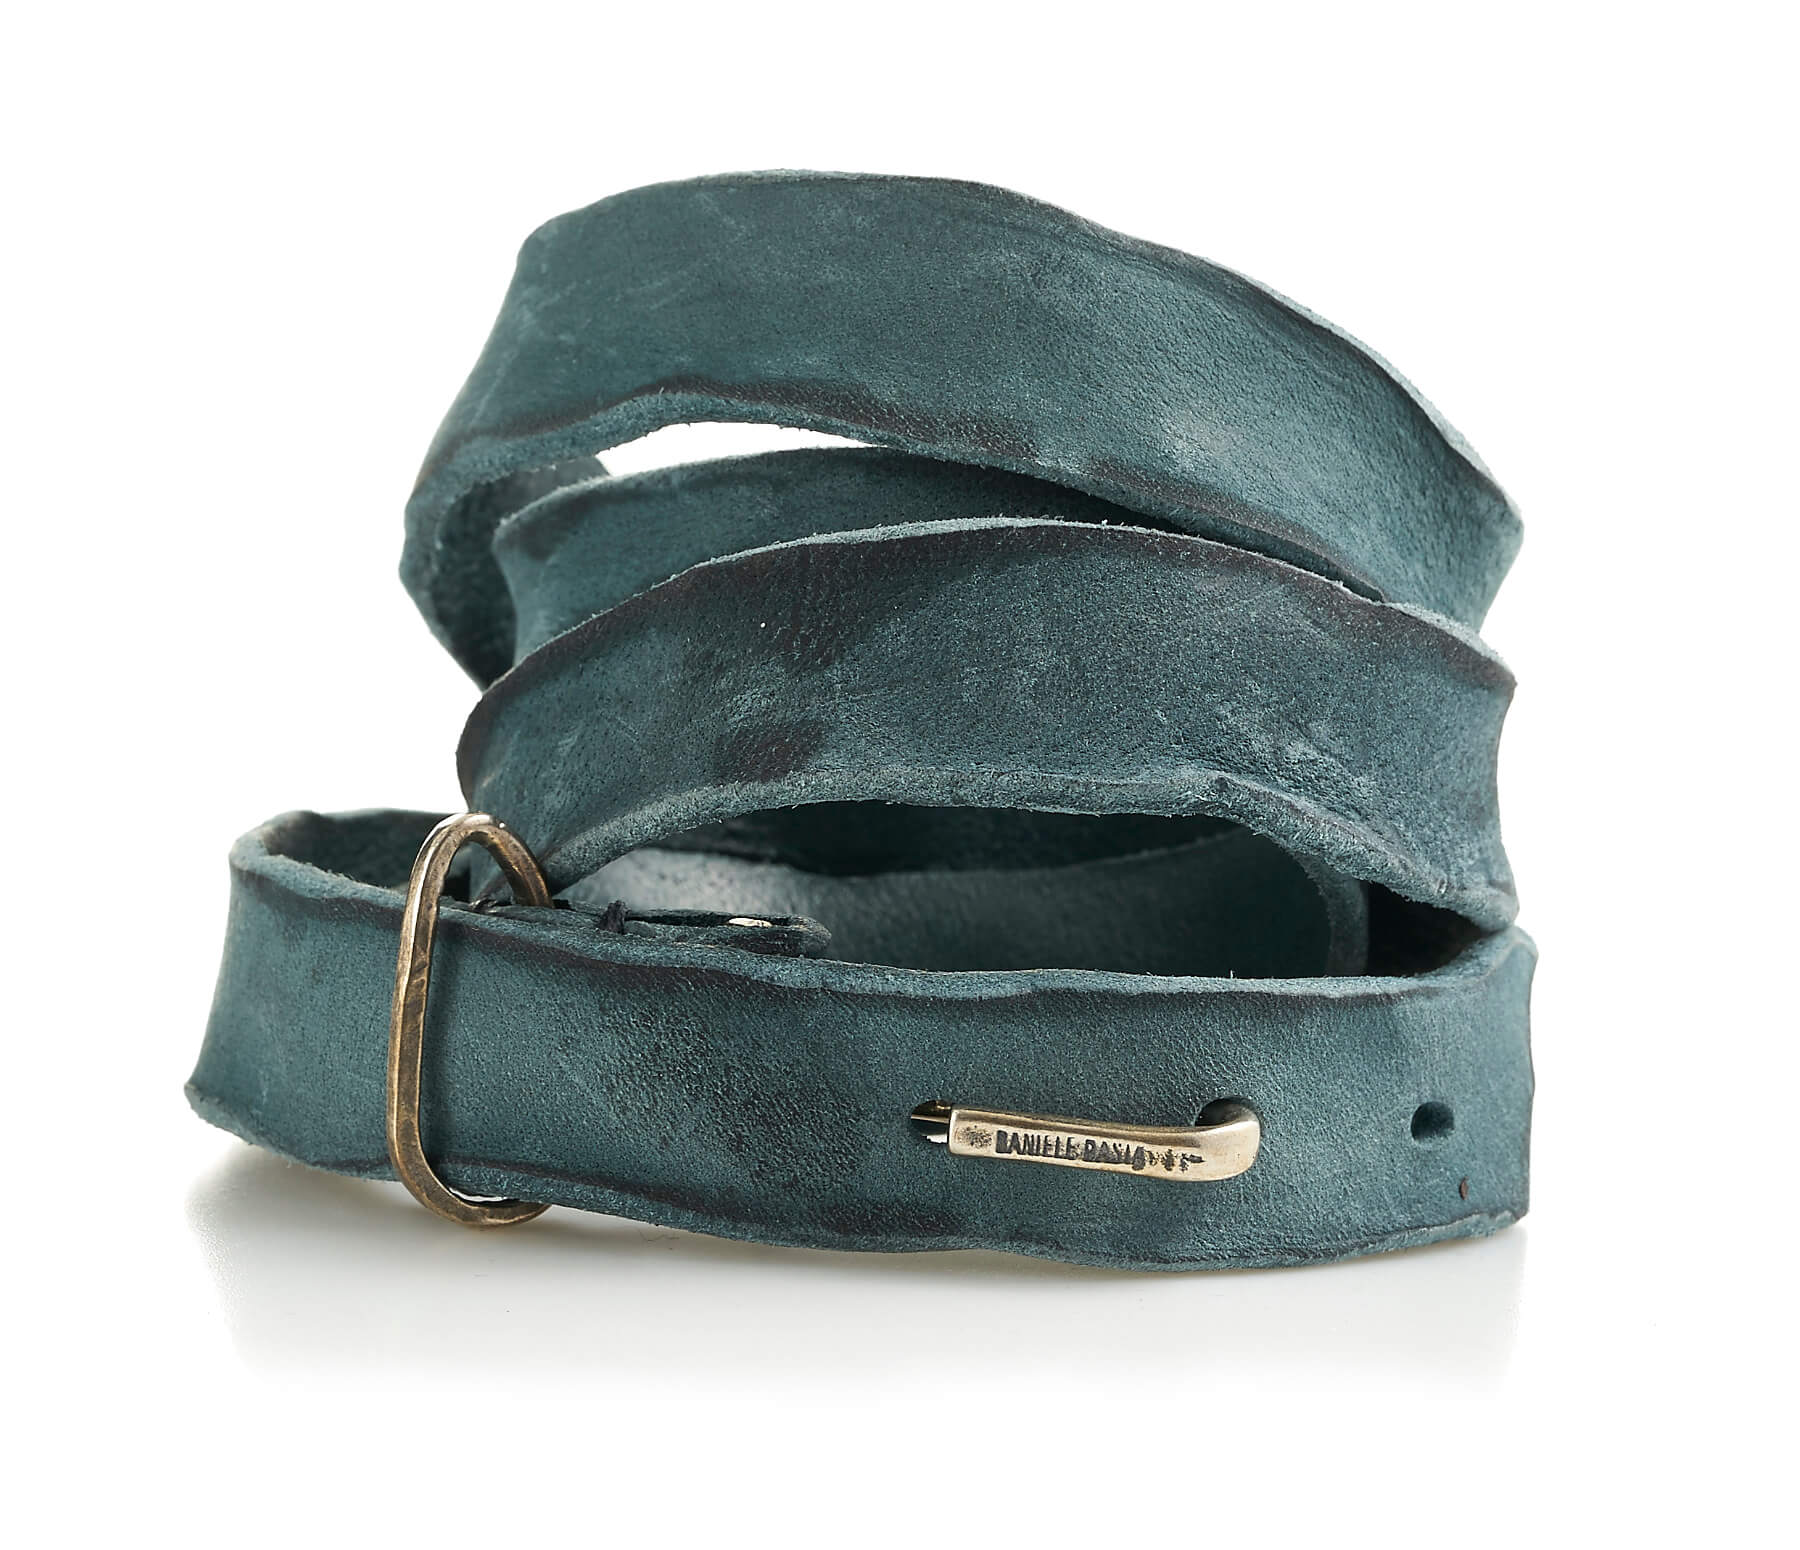 daniele basta leather and silver belt - bartolomeo front